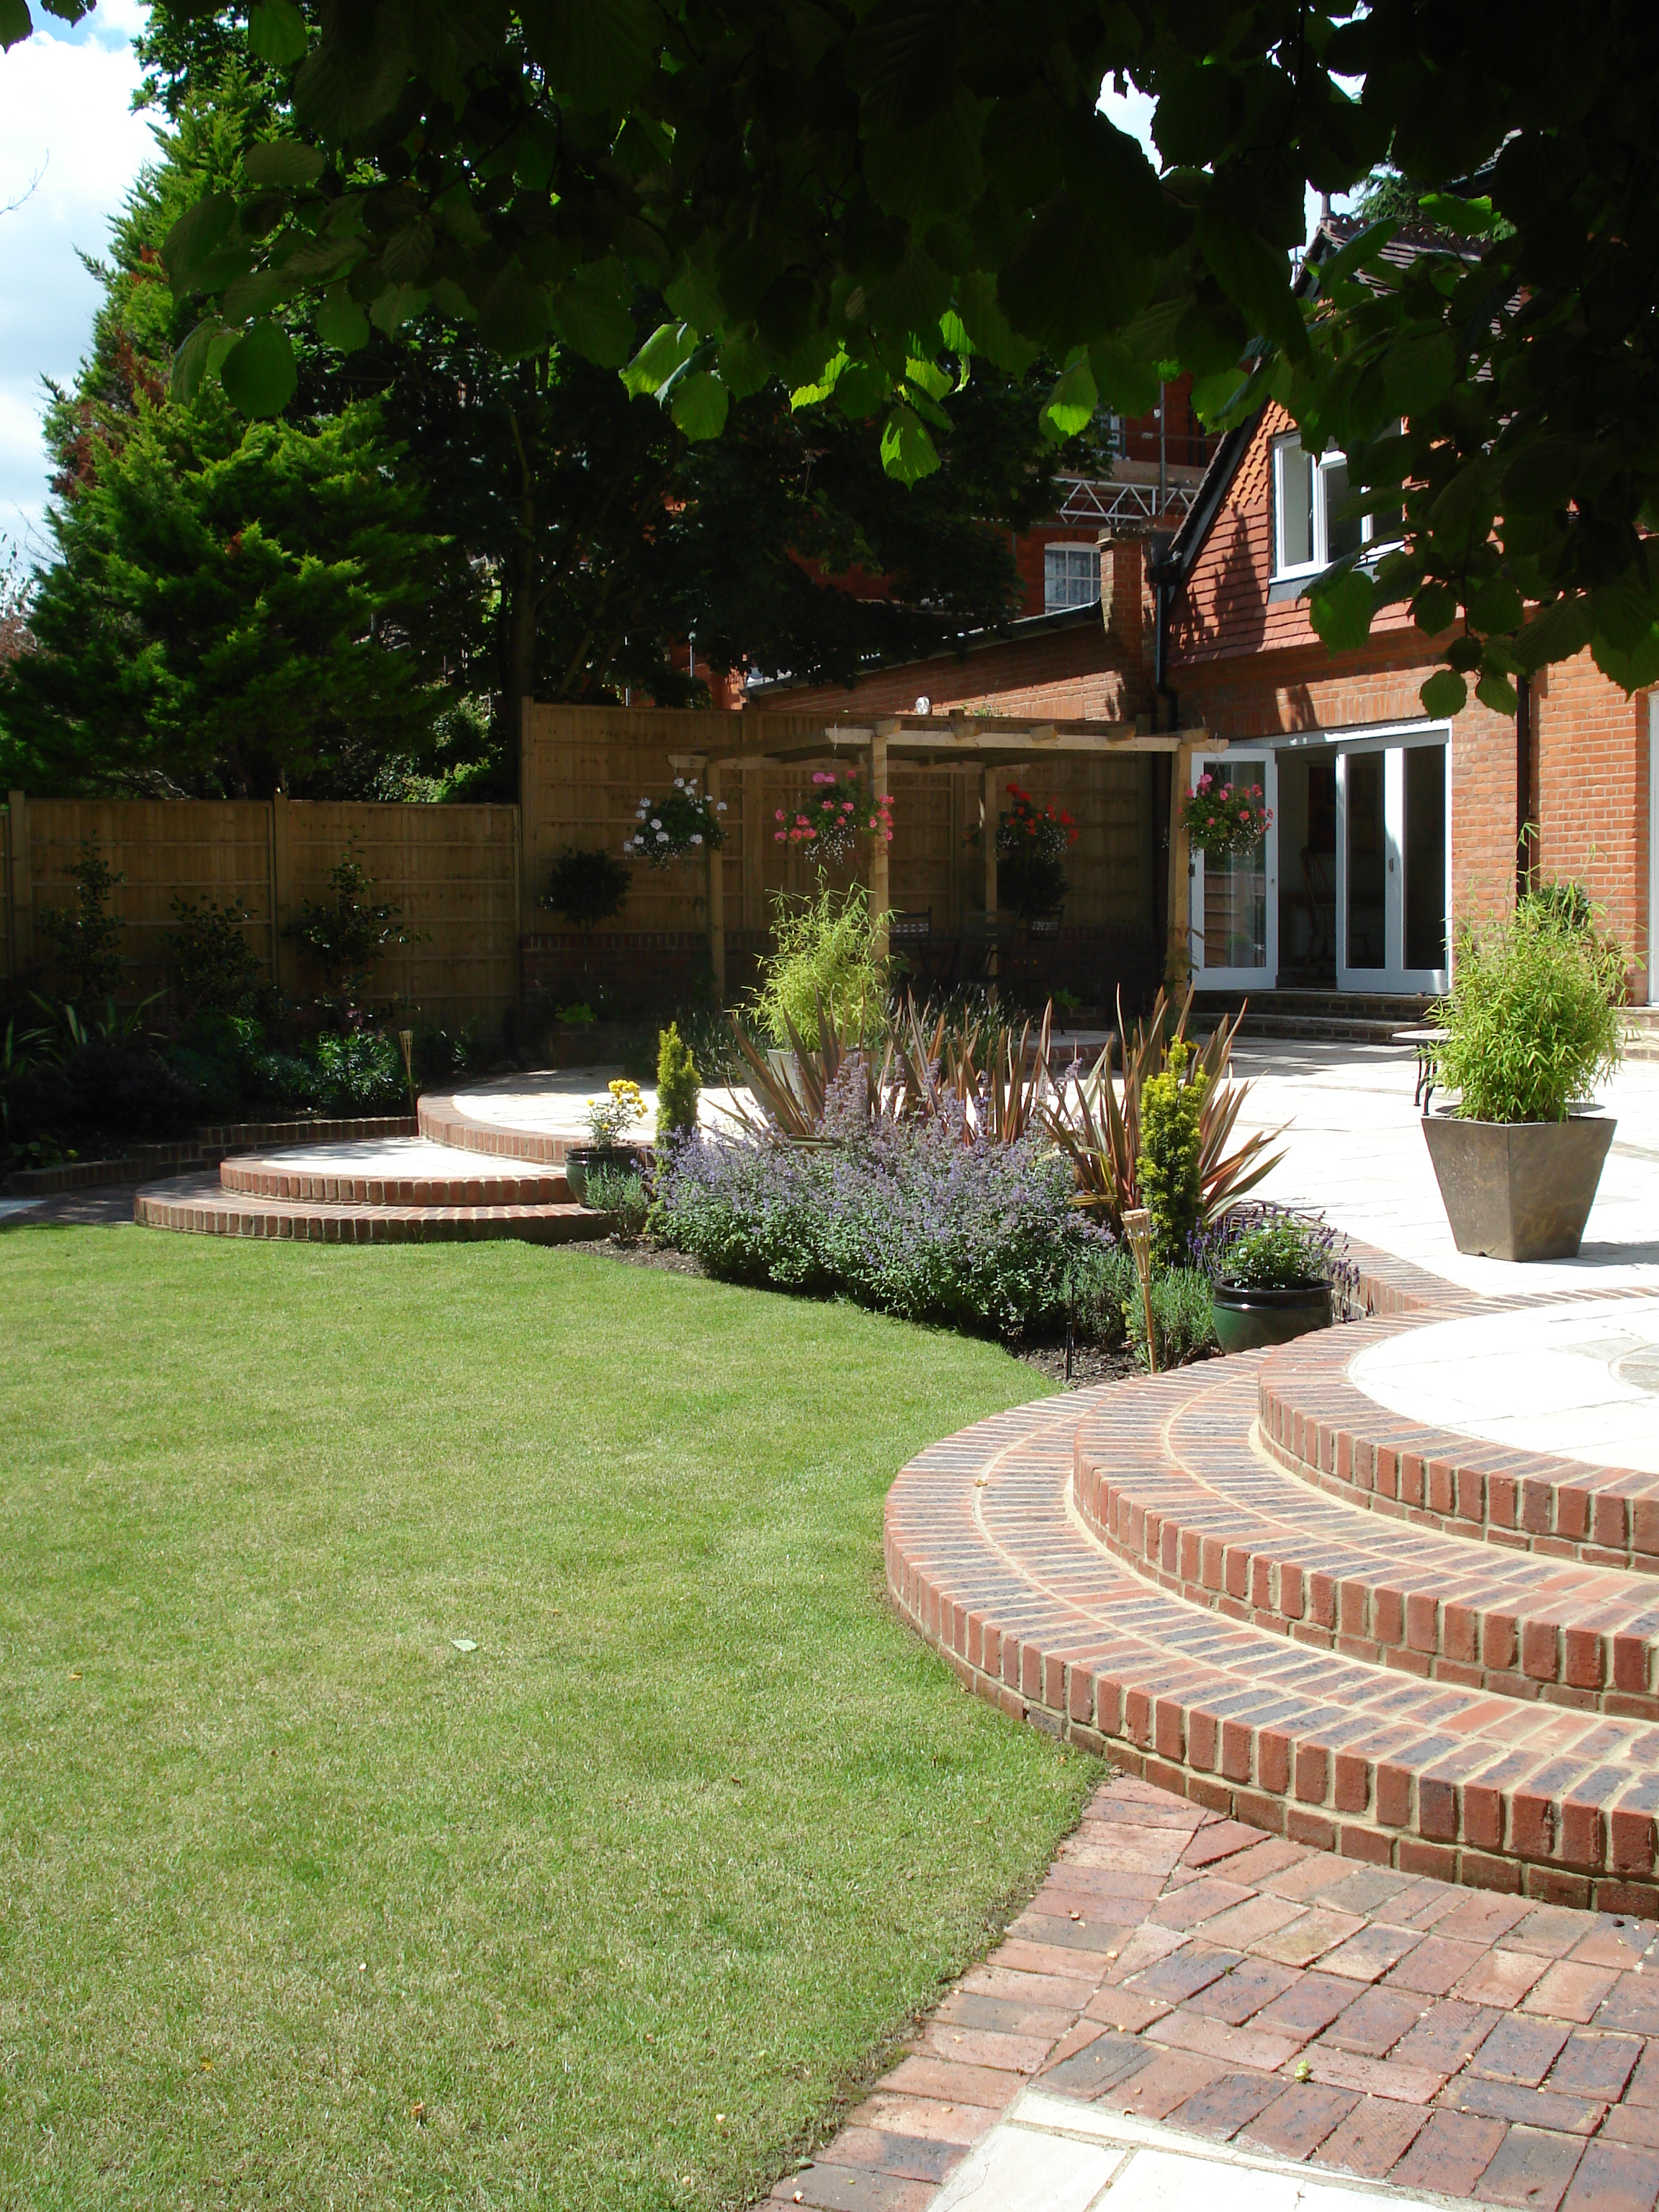 Rear Garden - The rear aspect of the house